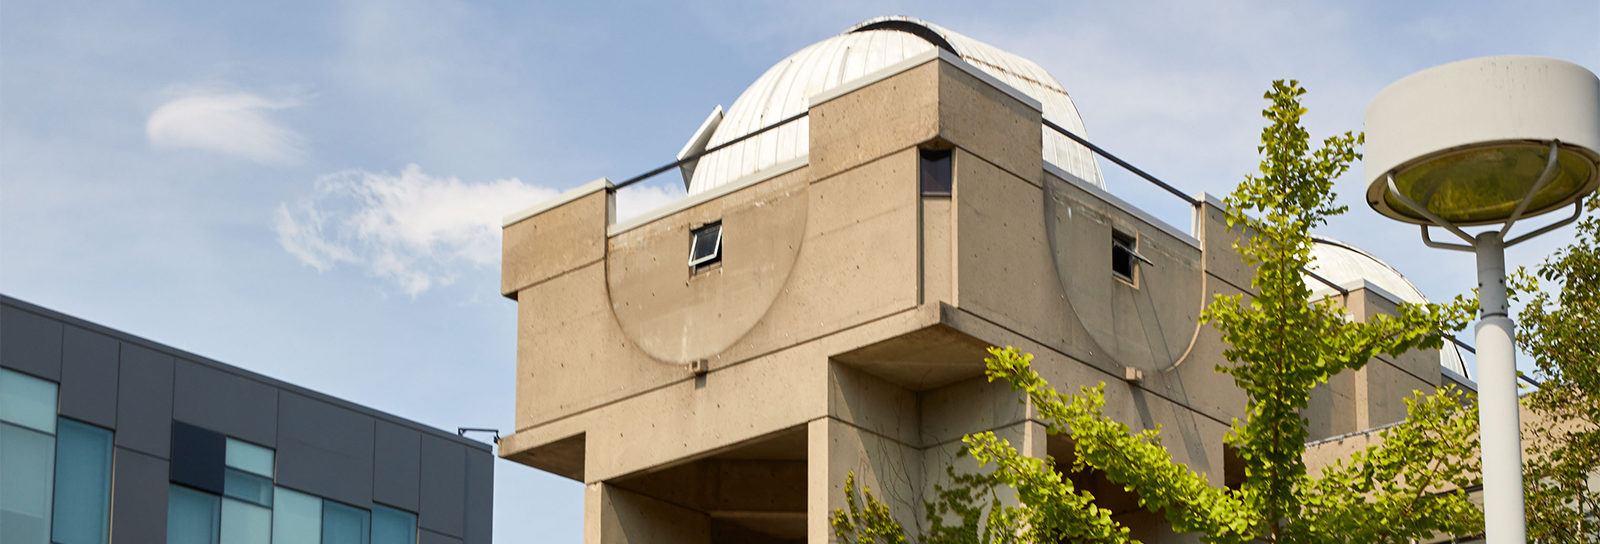 Faculty of Science Observatory and Life Sciences Buildings FEATURED image for new YFile